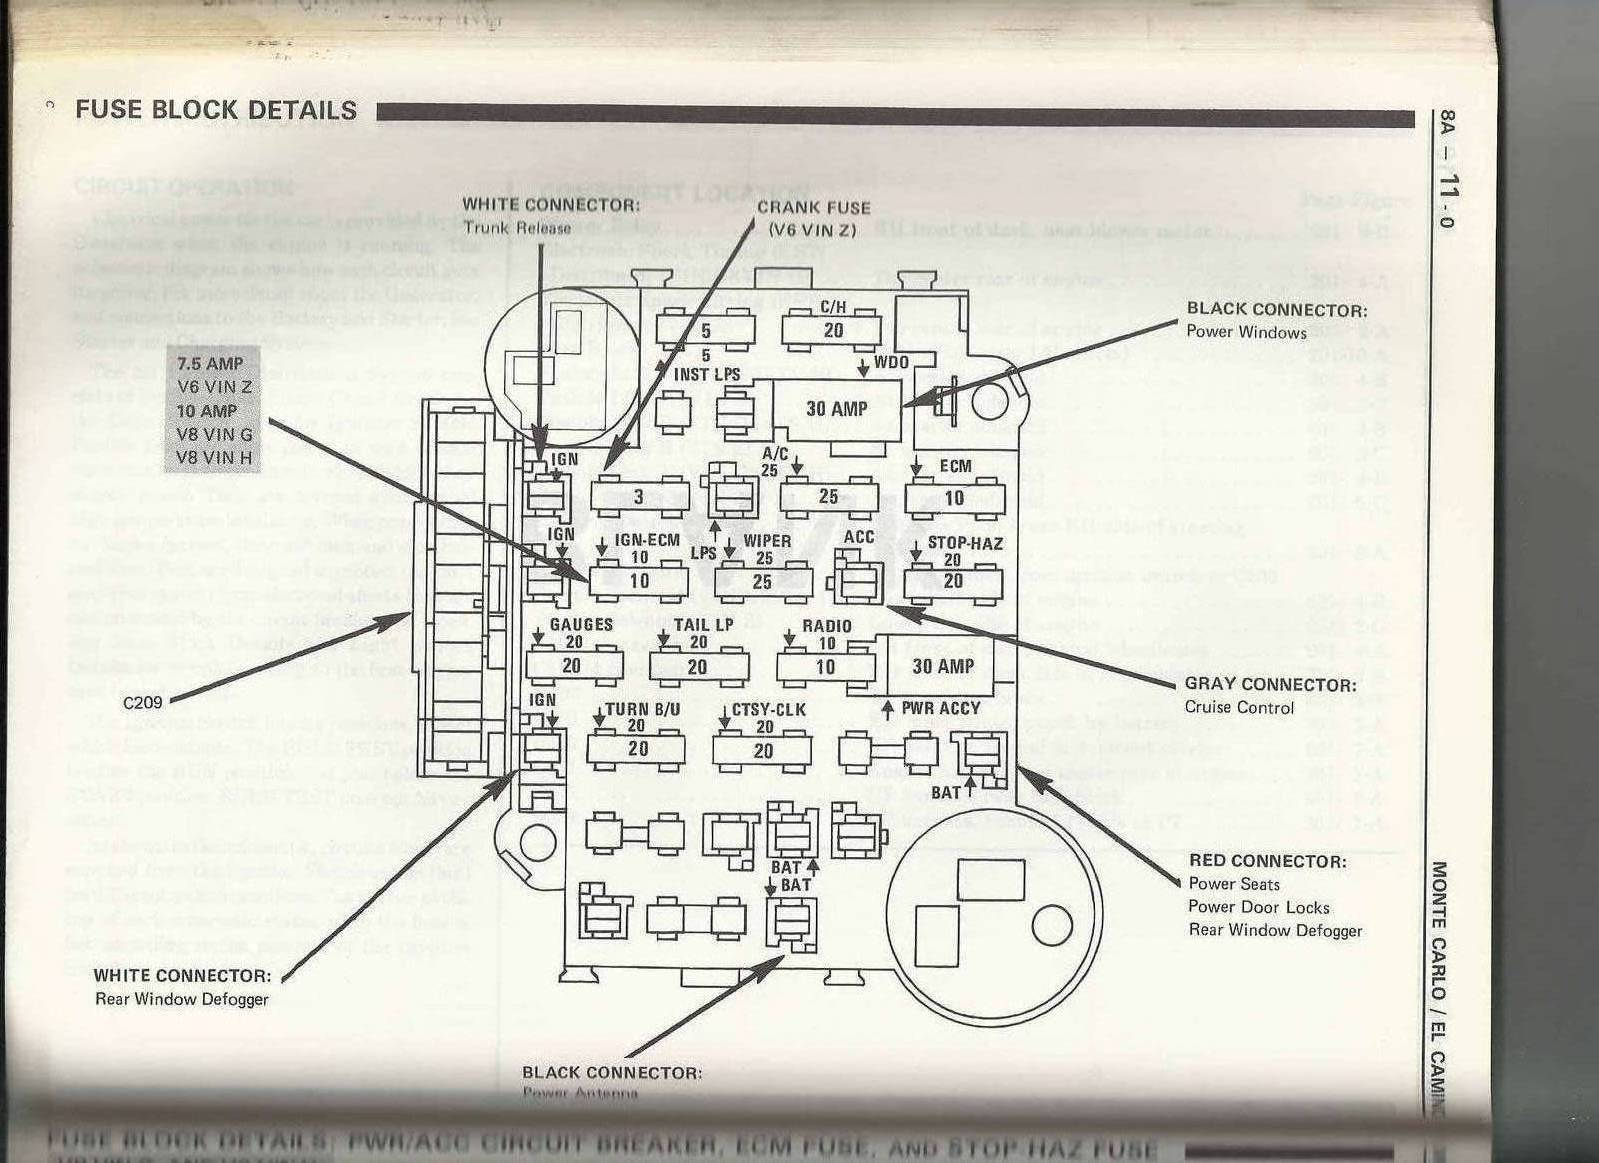 1999 monte carlo fuse panel diagram